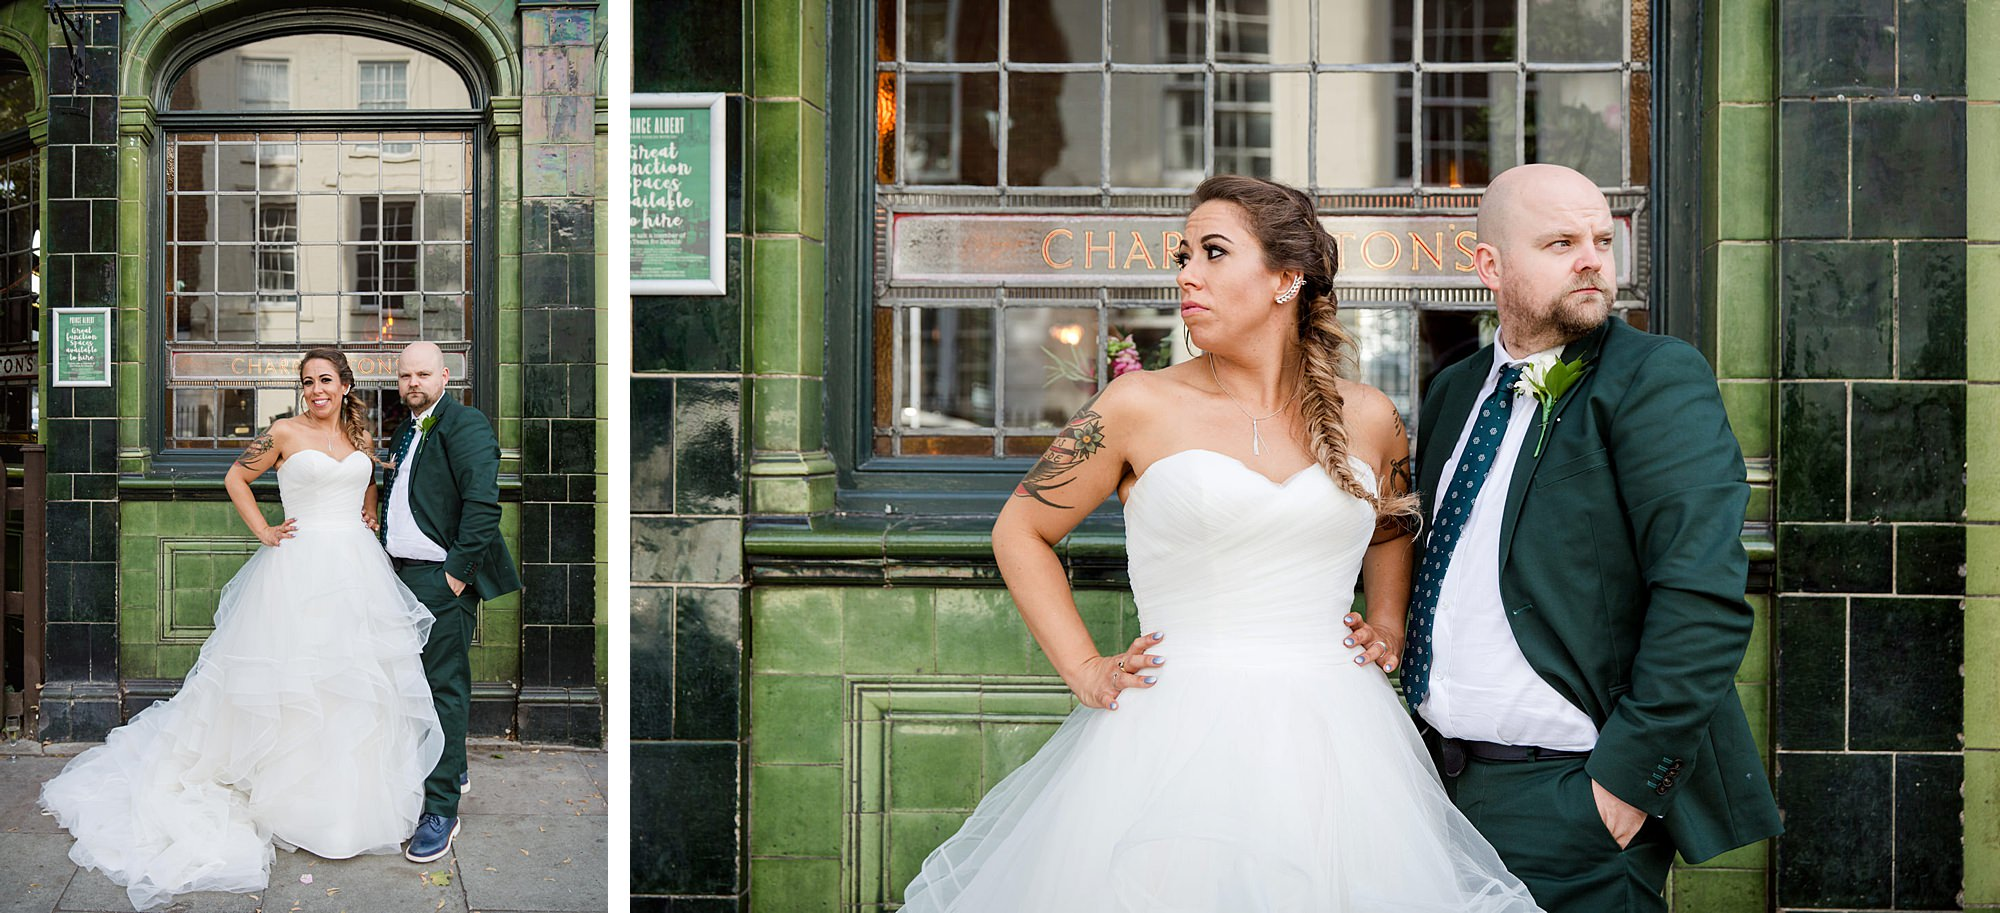 Prince albert camden wedding sassy bride and groom